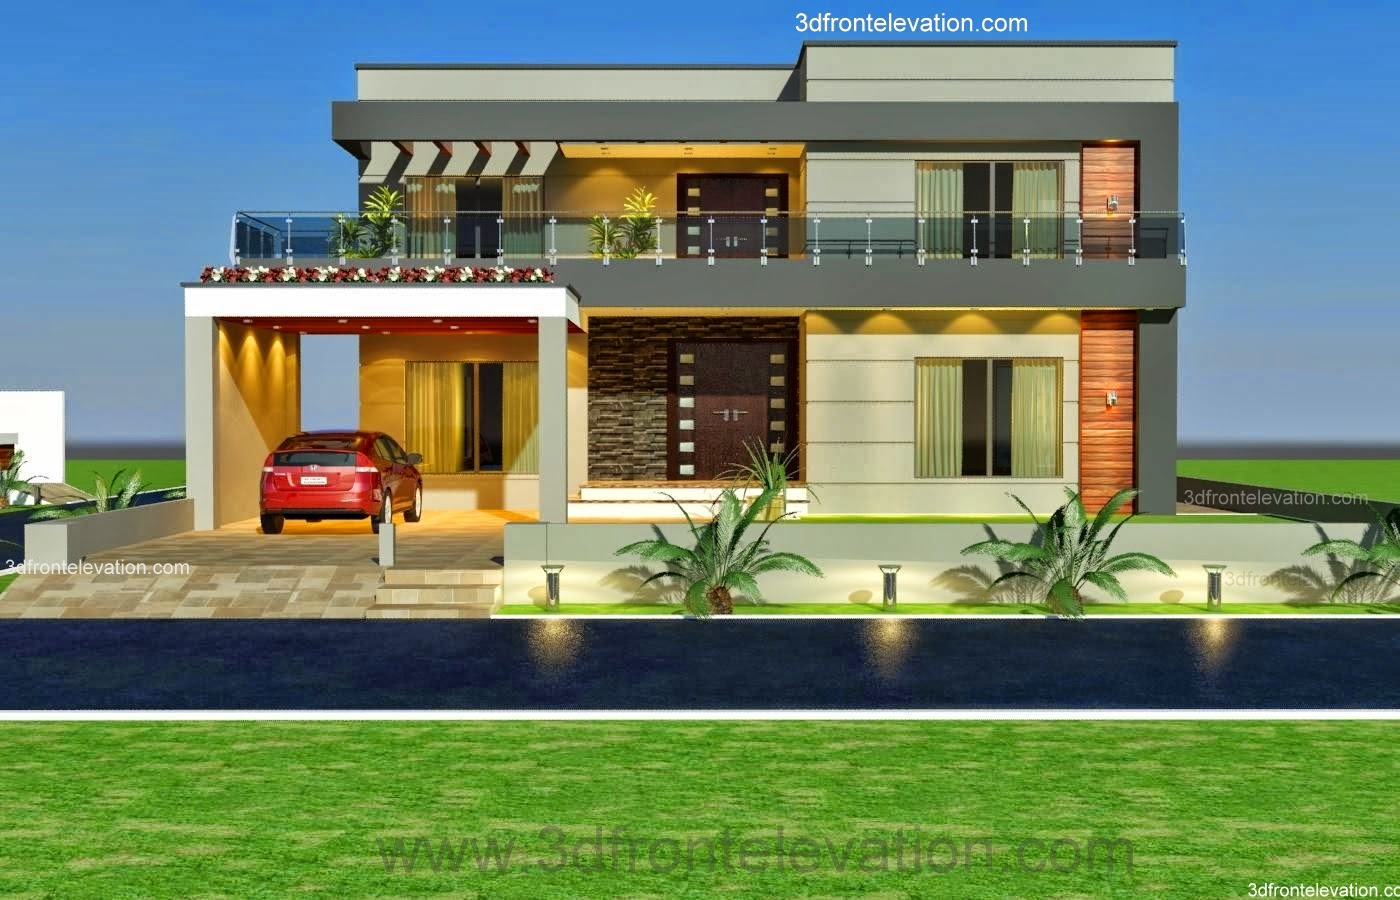 3D Front Elevation.com: 1 Kanal Old Style House Convert In